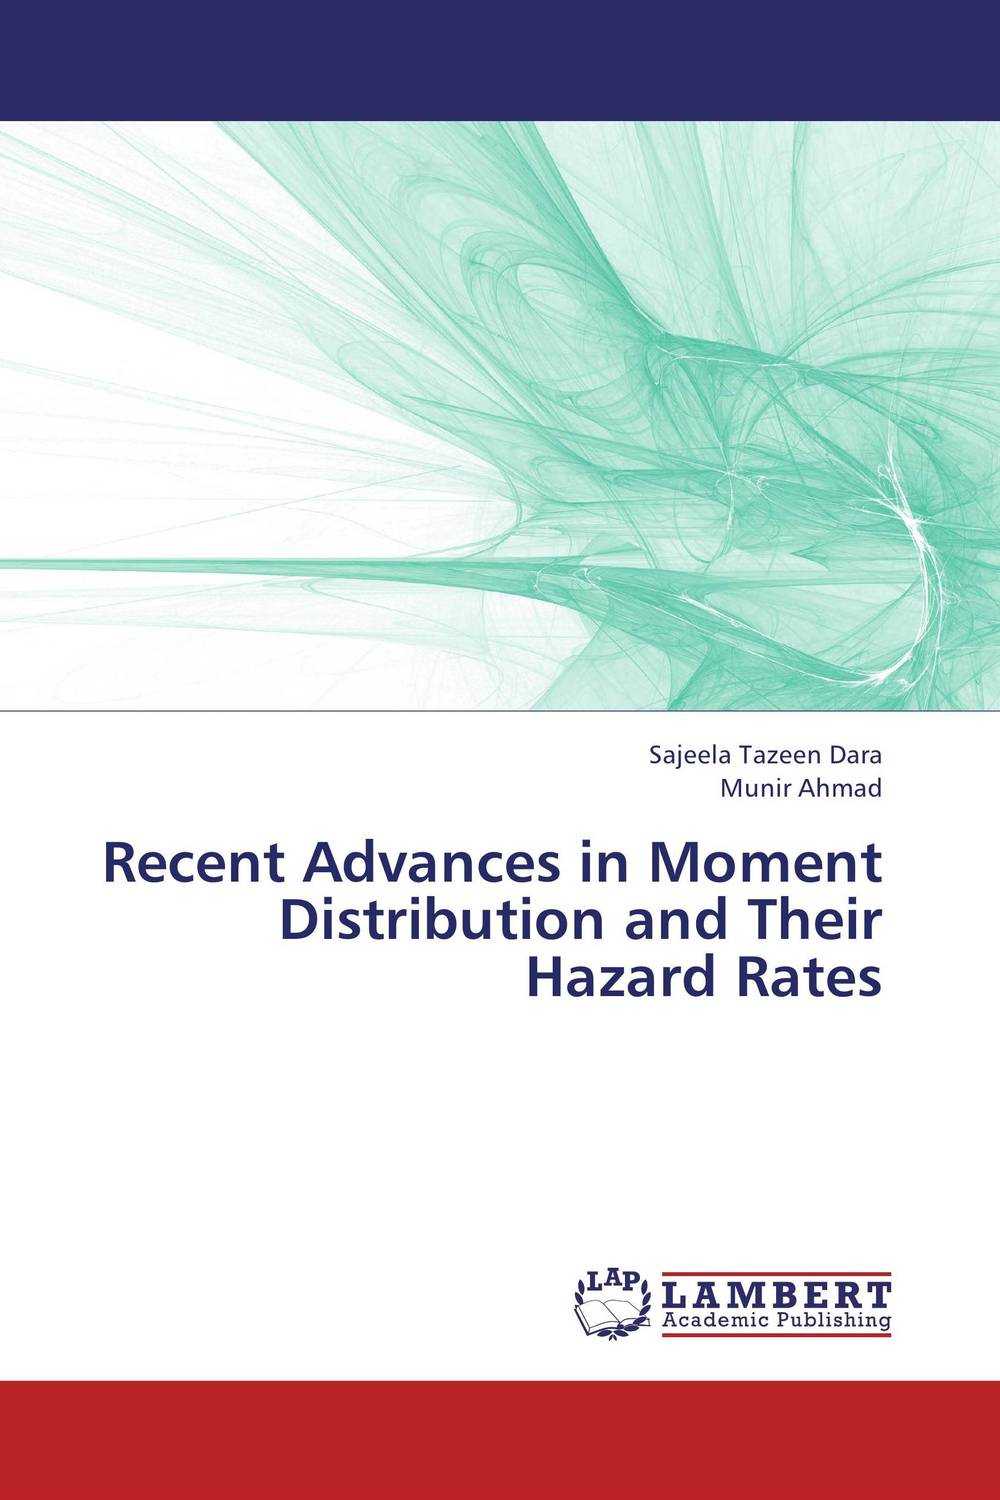 Recent Advances in Moment Distribution and Their Hazard Rates